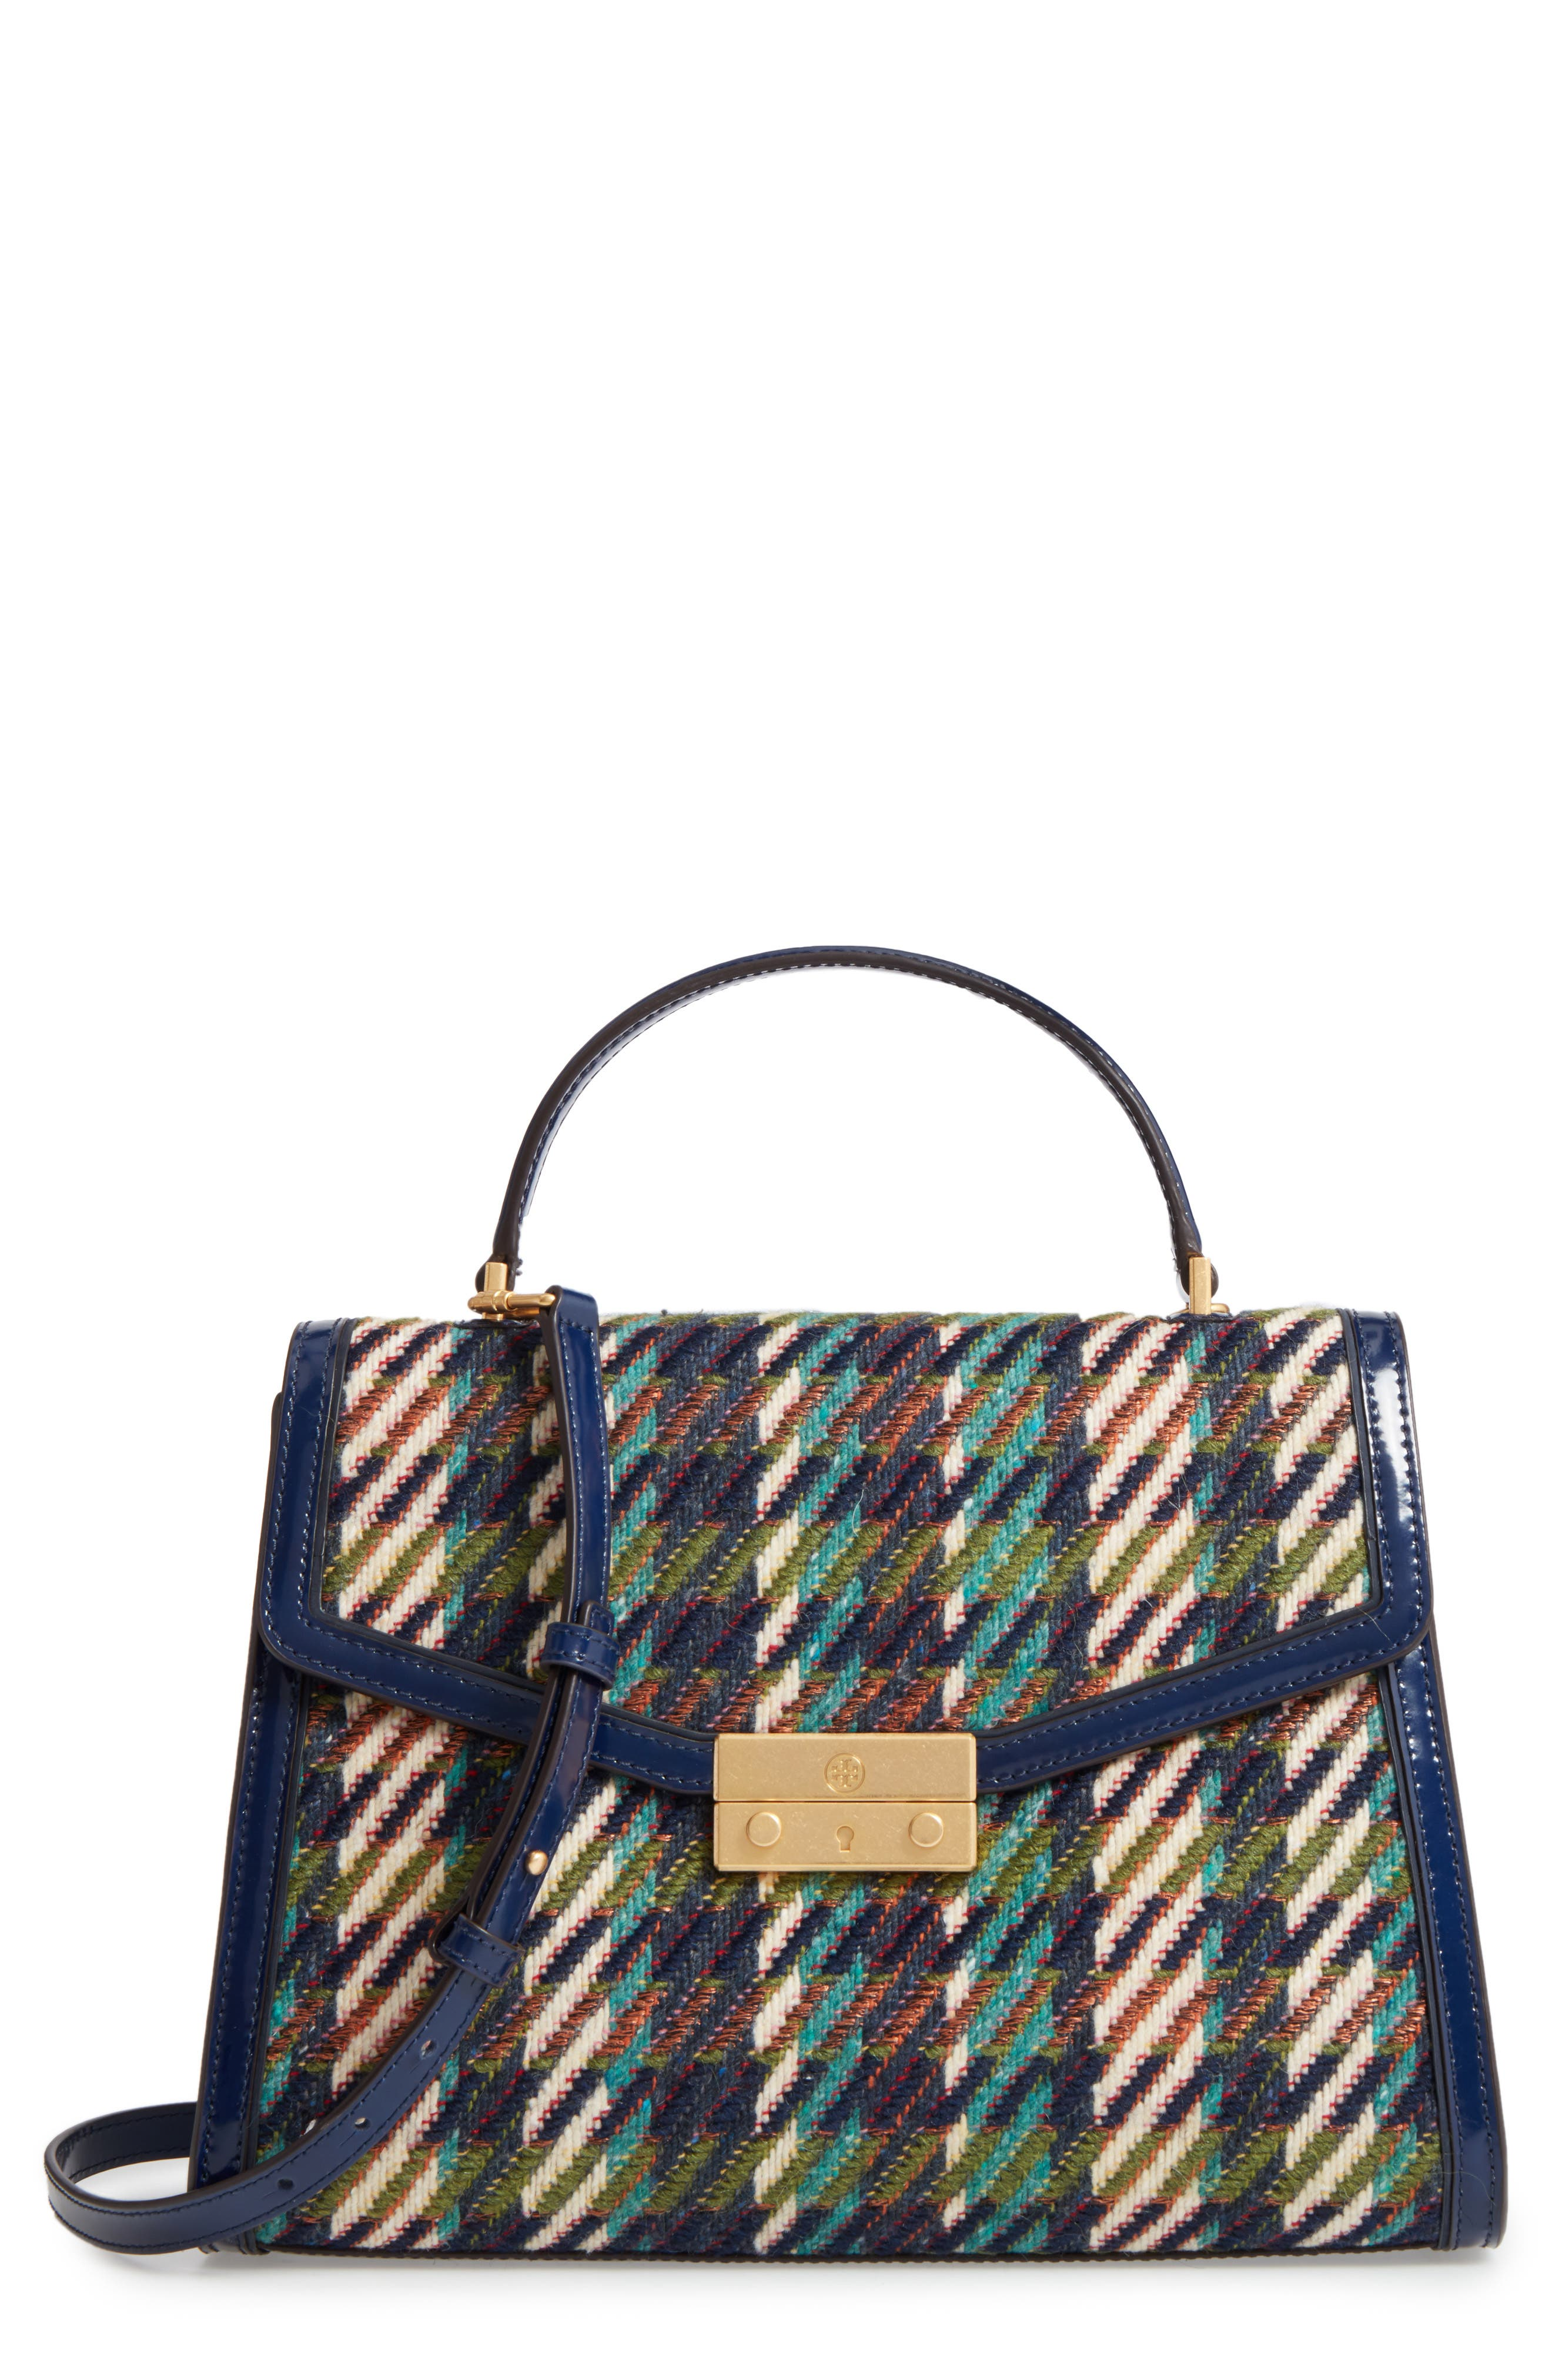 Alternate Image 1 Selected - Tory Burch Juliette Tweed Top Handle Satchel